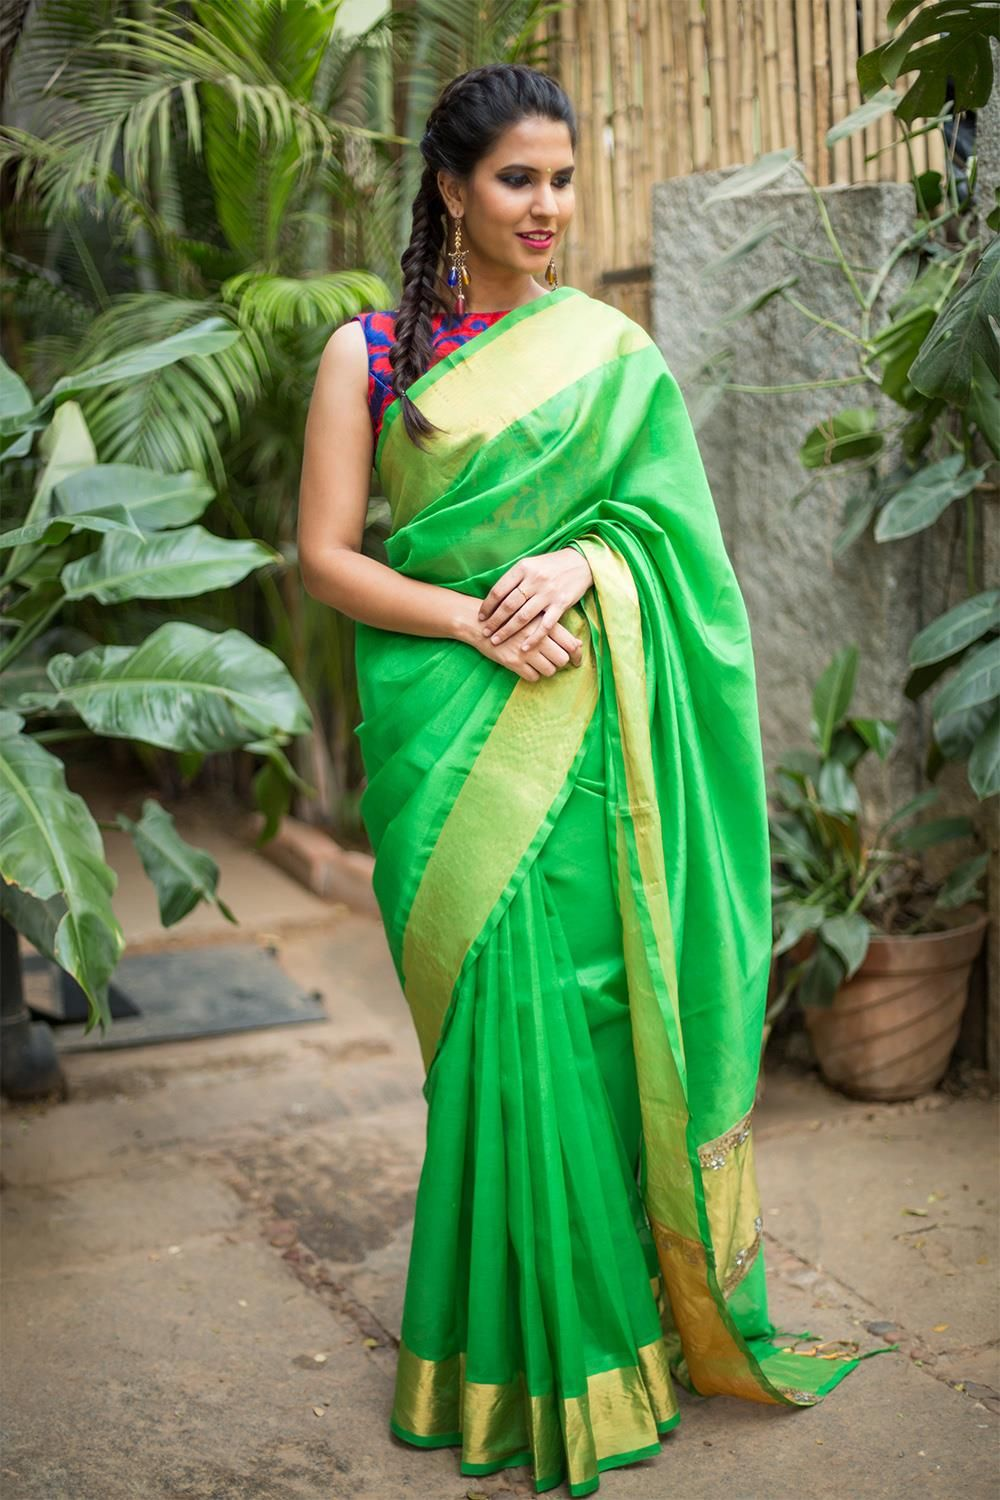 a95755c23bfb1 Parrot green handloom silk cotton saree with gold tissue border and pallu  detailing  saree  blouse  houseofblouse  indian  bollywood  style   parrotgreen ...